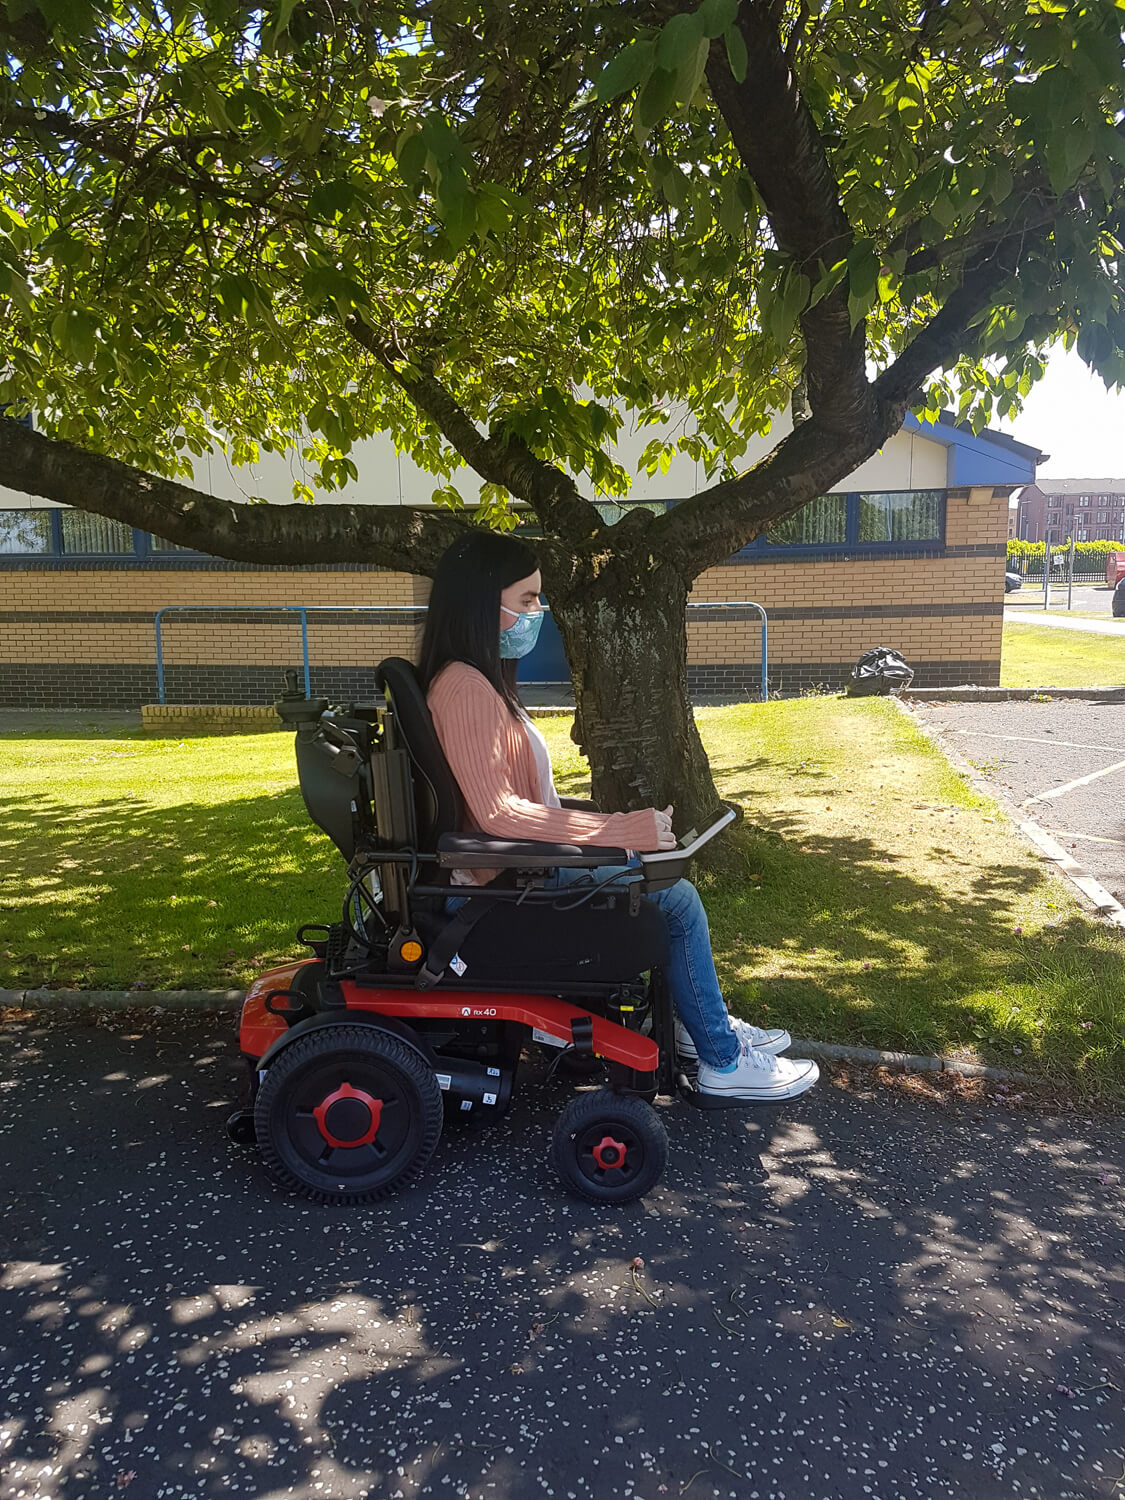 Emma, a white woman sitting in her powered wheelchair outside next to a grassy area and tree. Emma is wearing a peach cardigan, skinny jeans and white converse shoes. She has a face mask covering her nose and mouth.